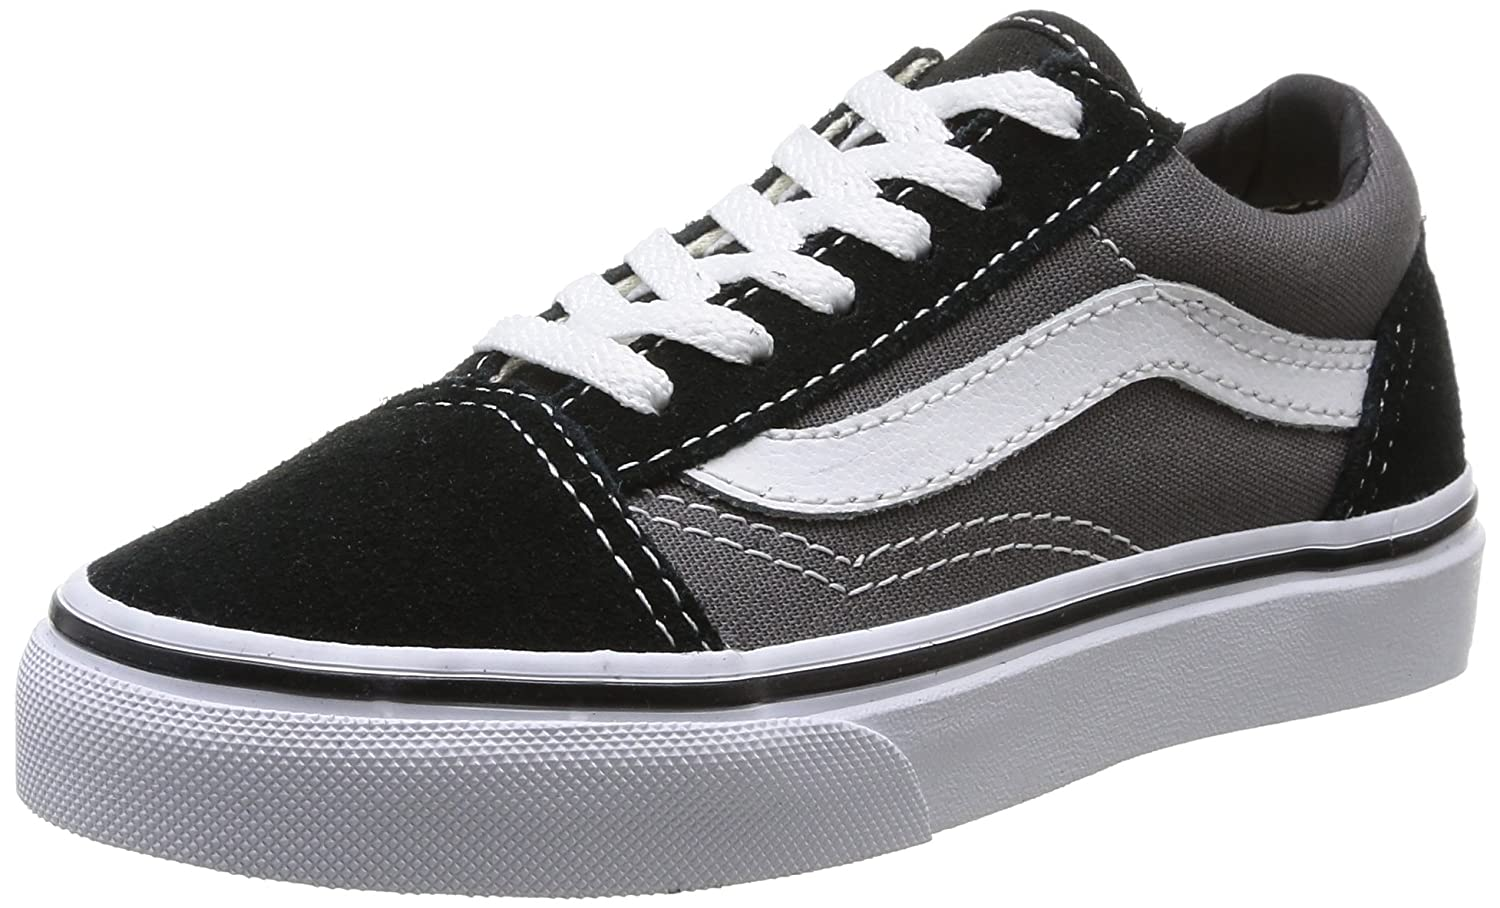 VANS Unisex Kids (C&L) Old Skool Skate Shoes, Comfortable and Durable in Sturdy Canvas and Leather Uppers B00PMMRL7Q 13 M US Little Kid|Black Pewter